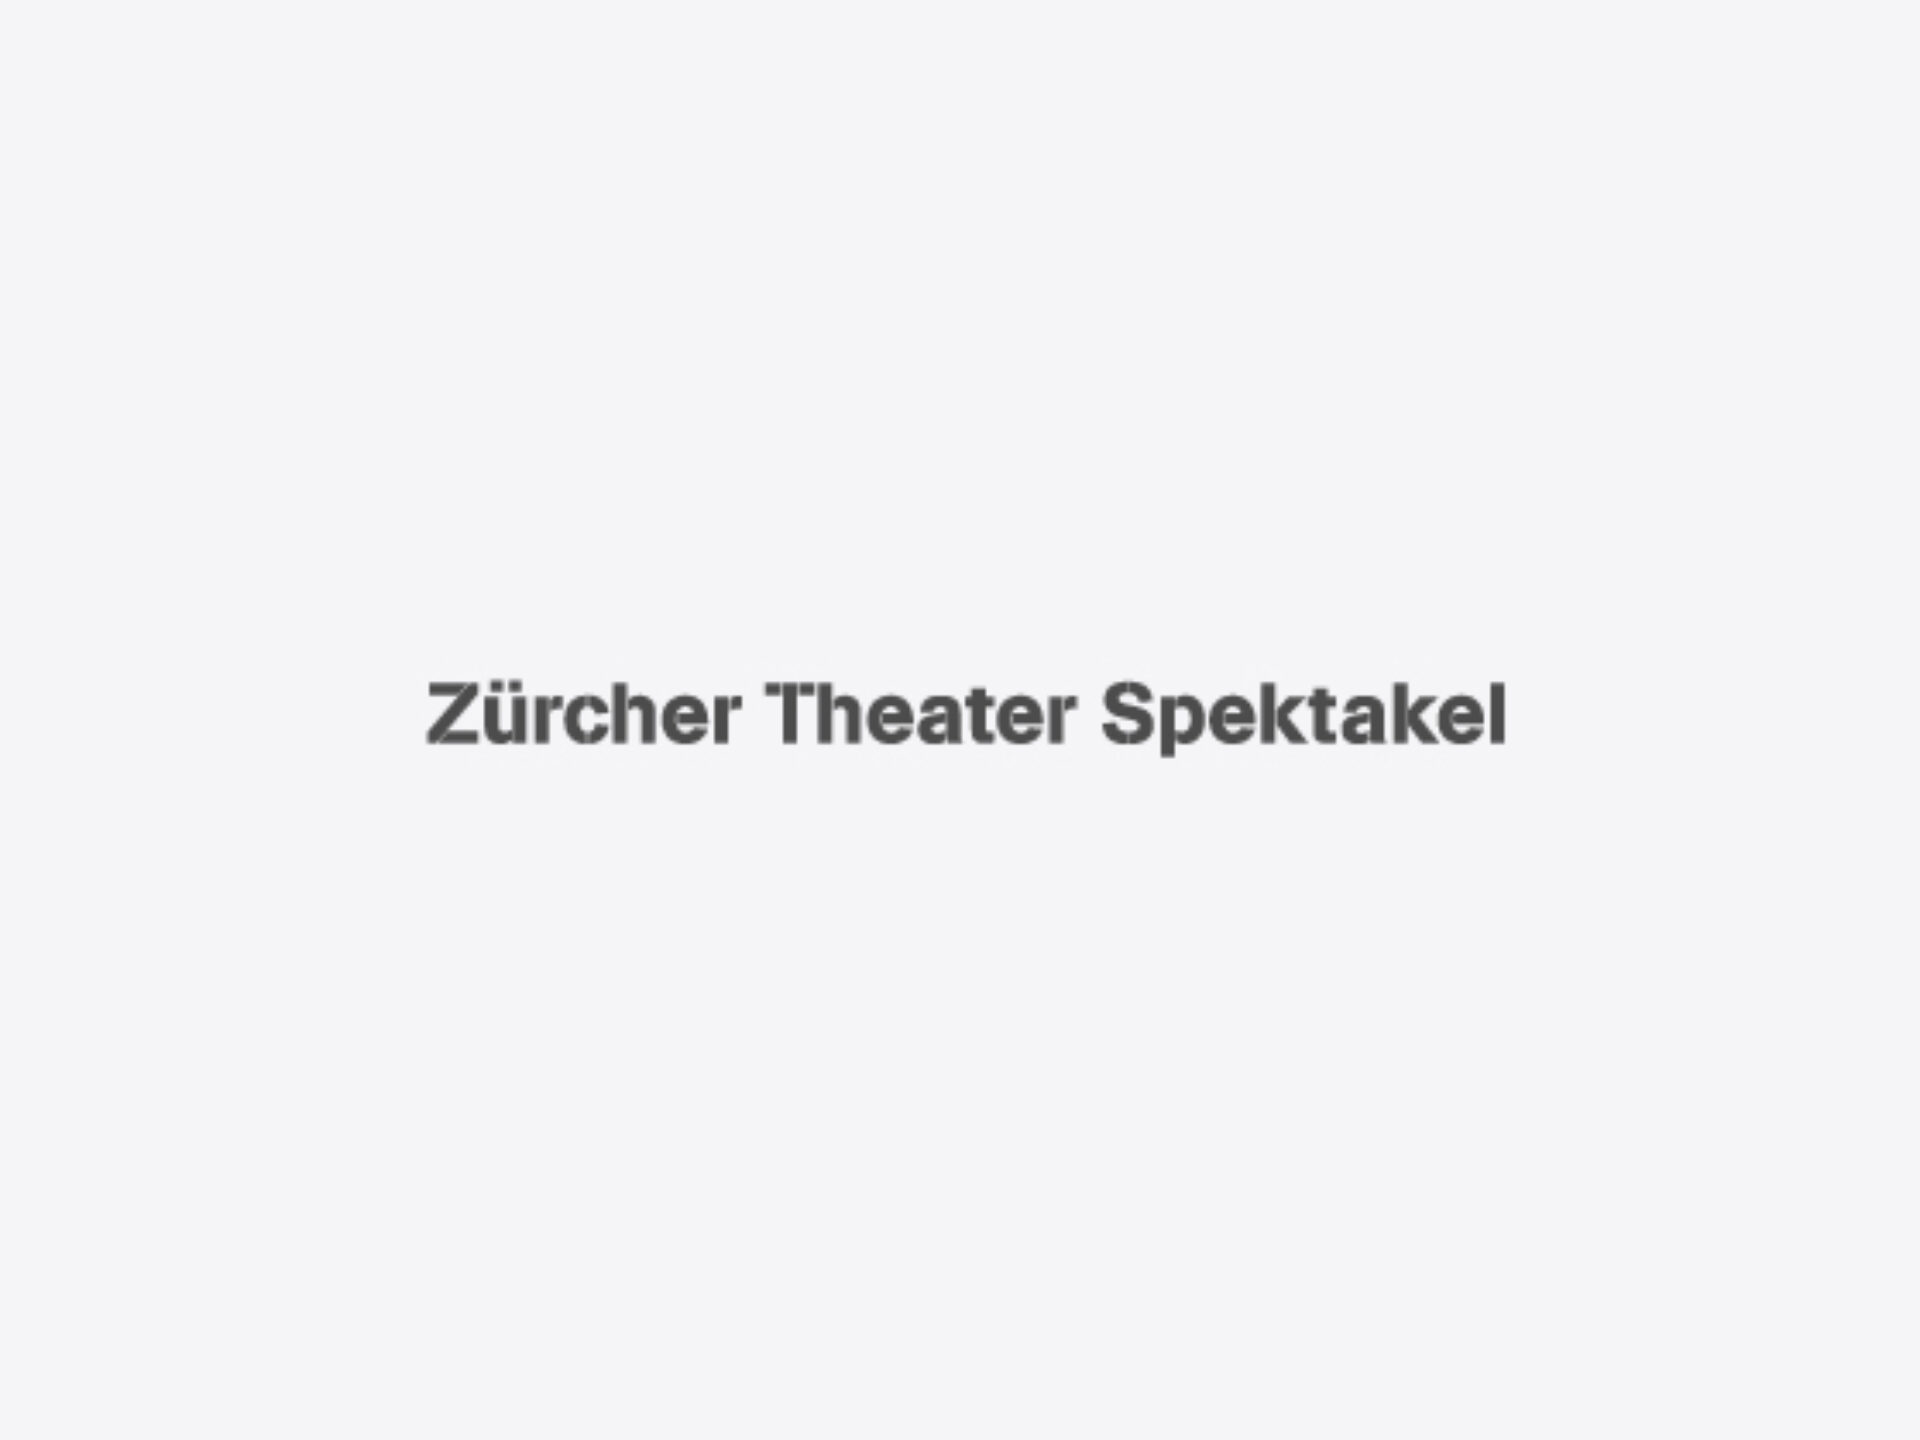 Manroof Referenz Zuerchertheaterspektakel